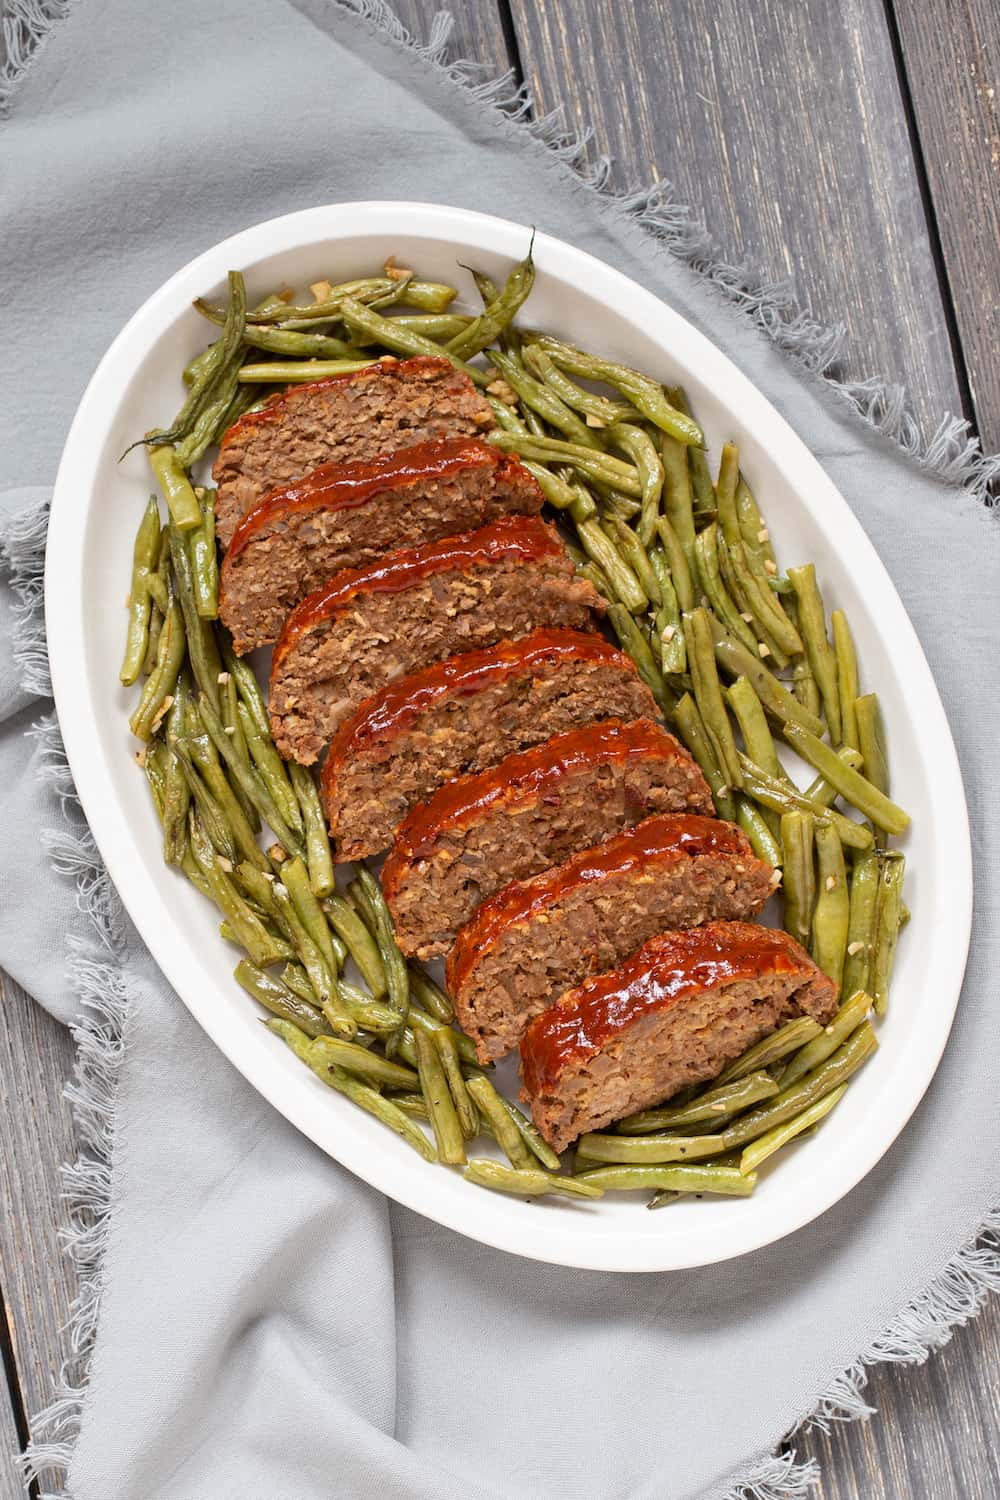 Barbecue Meatloaf and Green Beans Are Practical and Magical